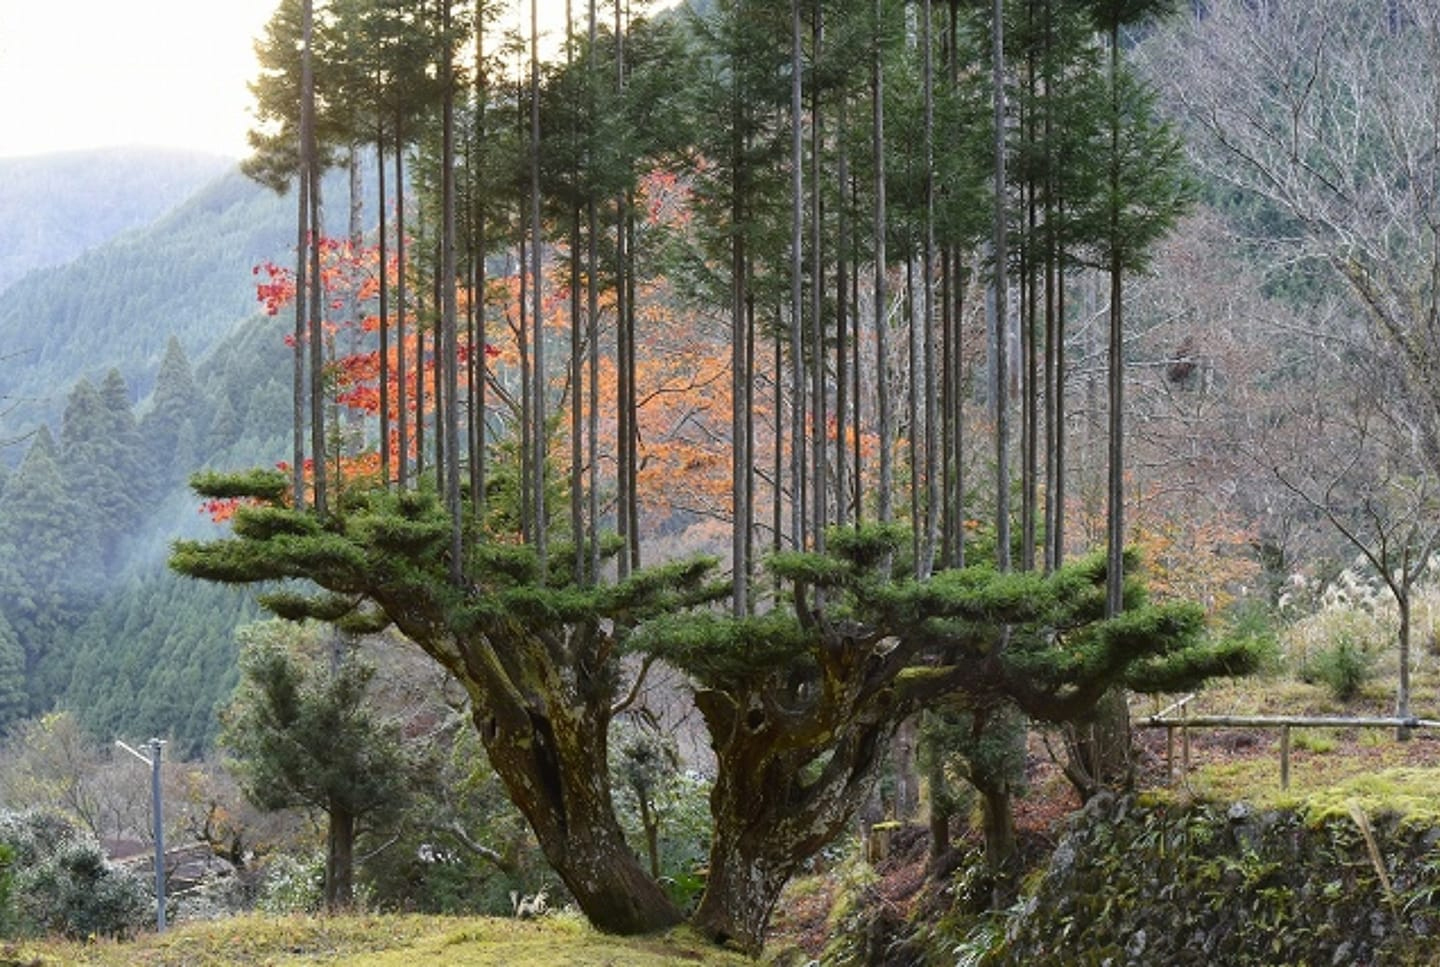 A Japanese Forestry Technique Prunes Upper Branches to Create a Tree Platform for More Sustainable Harvests